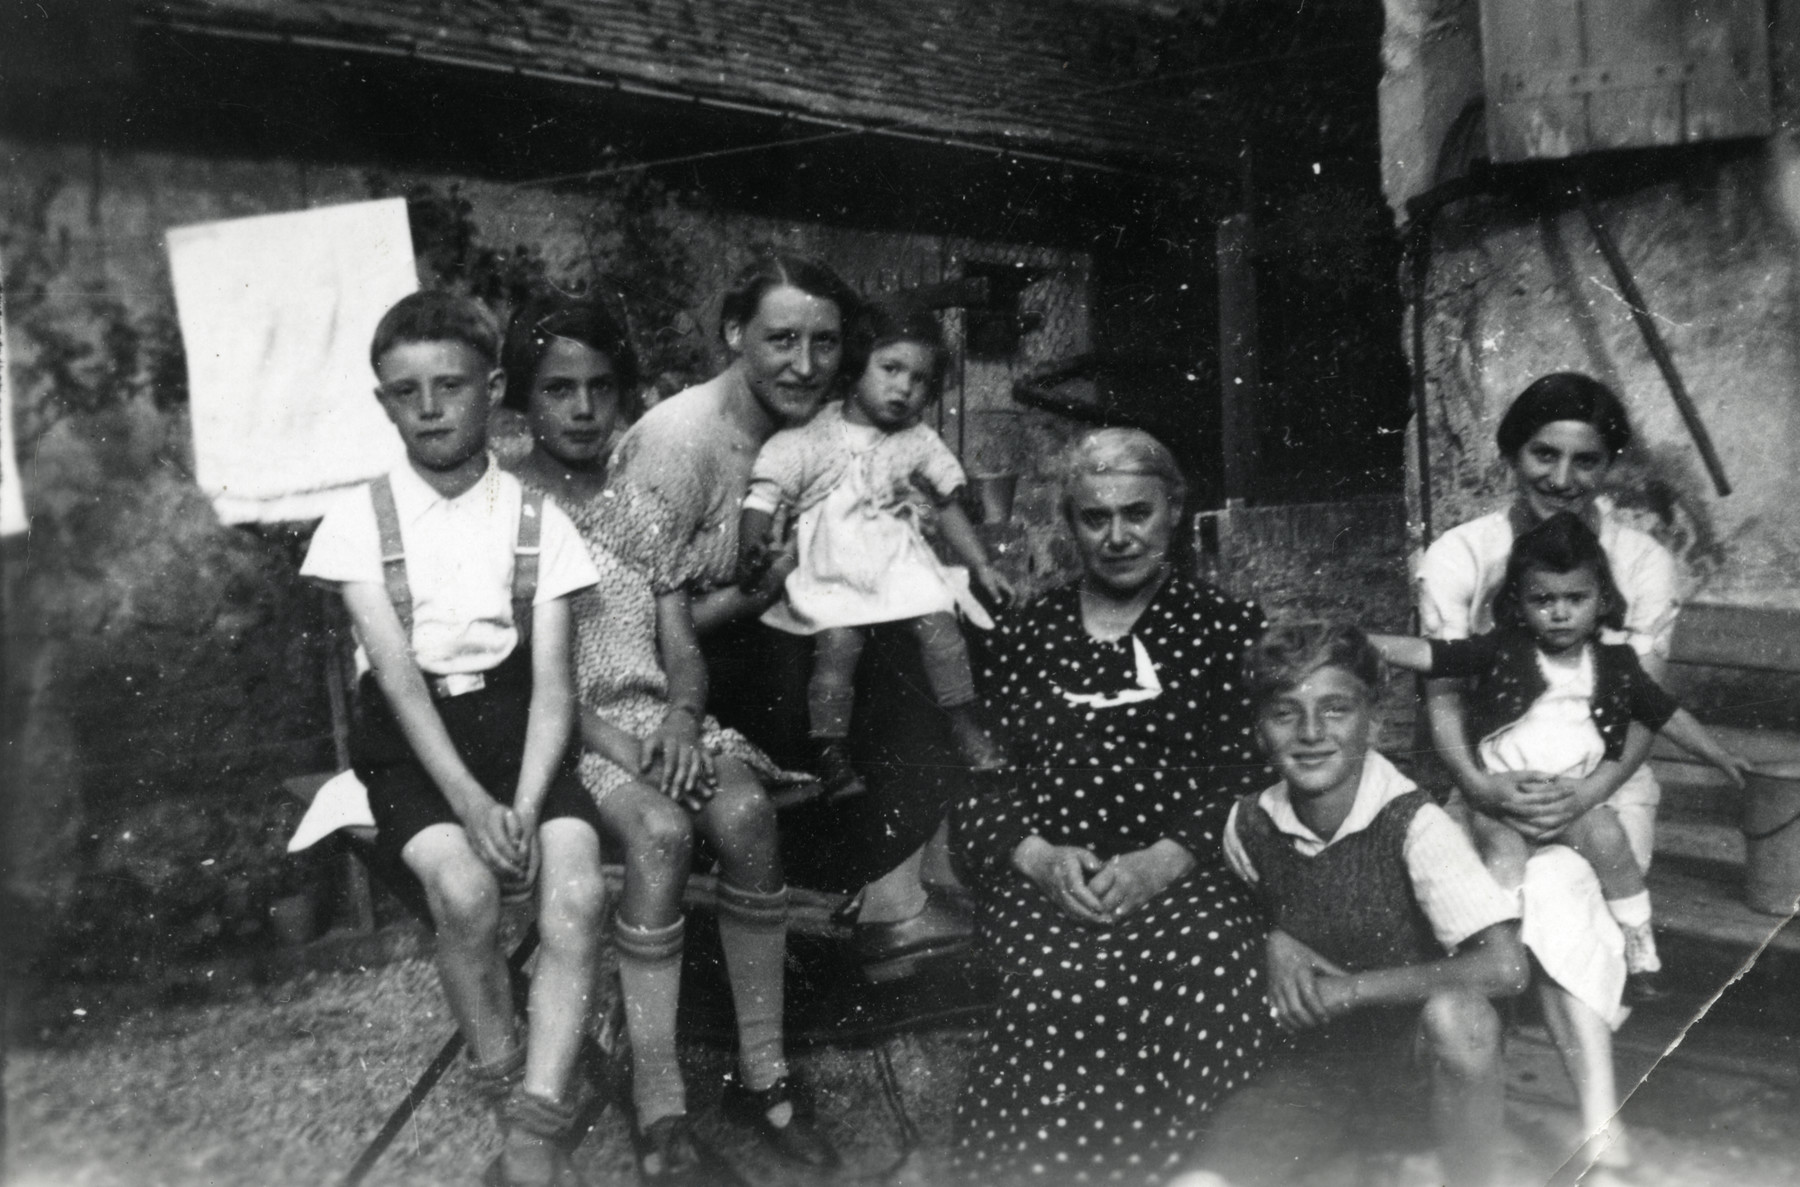 Members of an extended family pose outside a building on a farm.   Pictured third and fourth from the left is Rosa Moses, the donor's mother, and the donor Beatrice Heffes. Third from the right is Gerard Horst Meyerfeld, the donor's cousin.